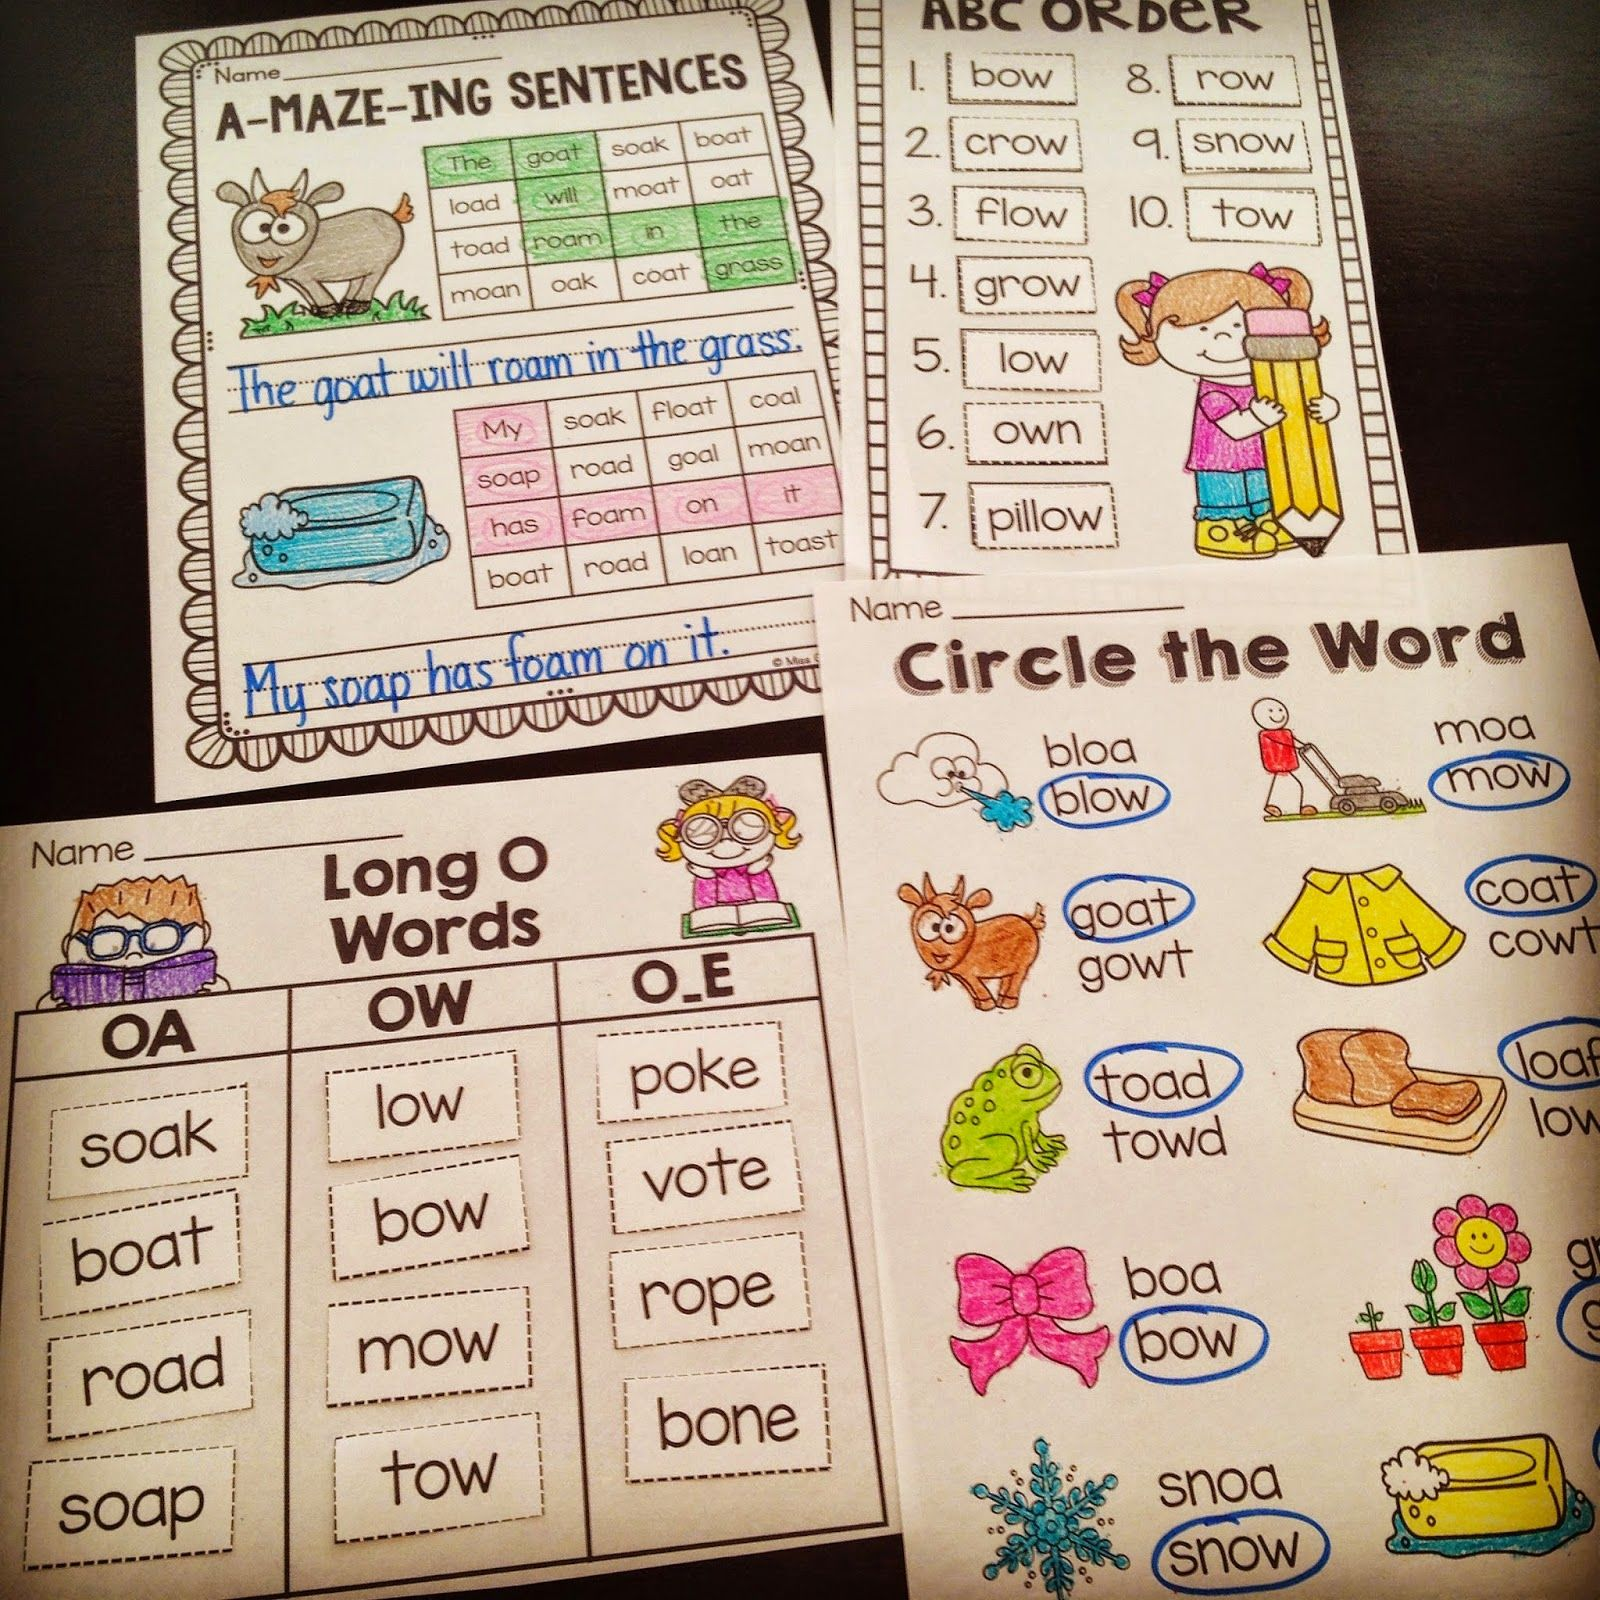 Awesome Oa Ow Worksheets And Activities To Teach The Long O Oa And Ow Sounds